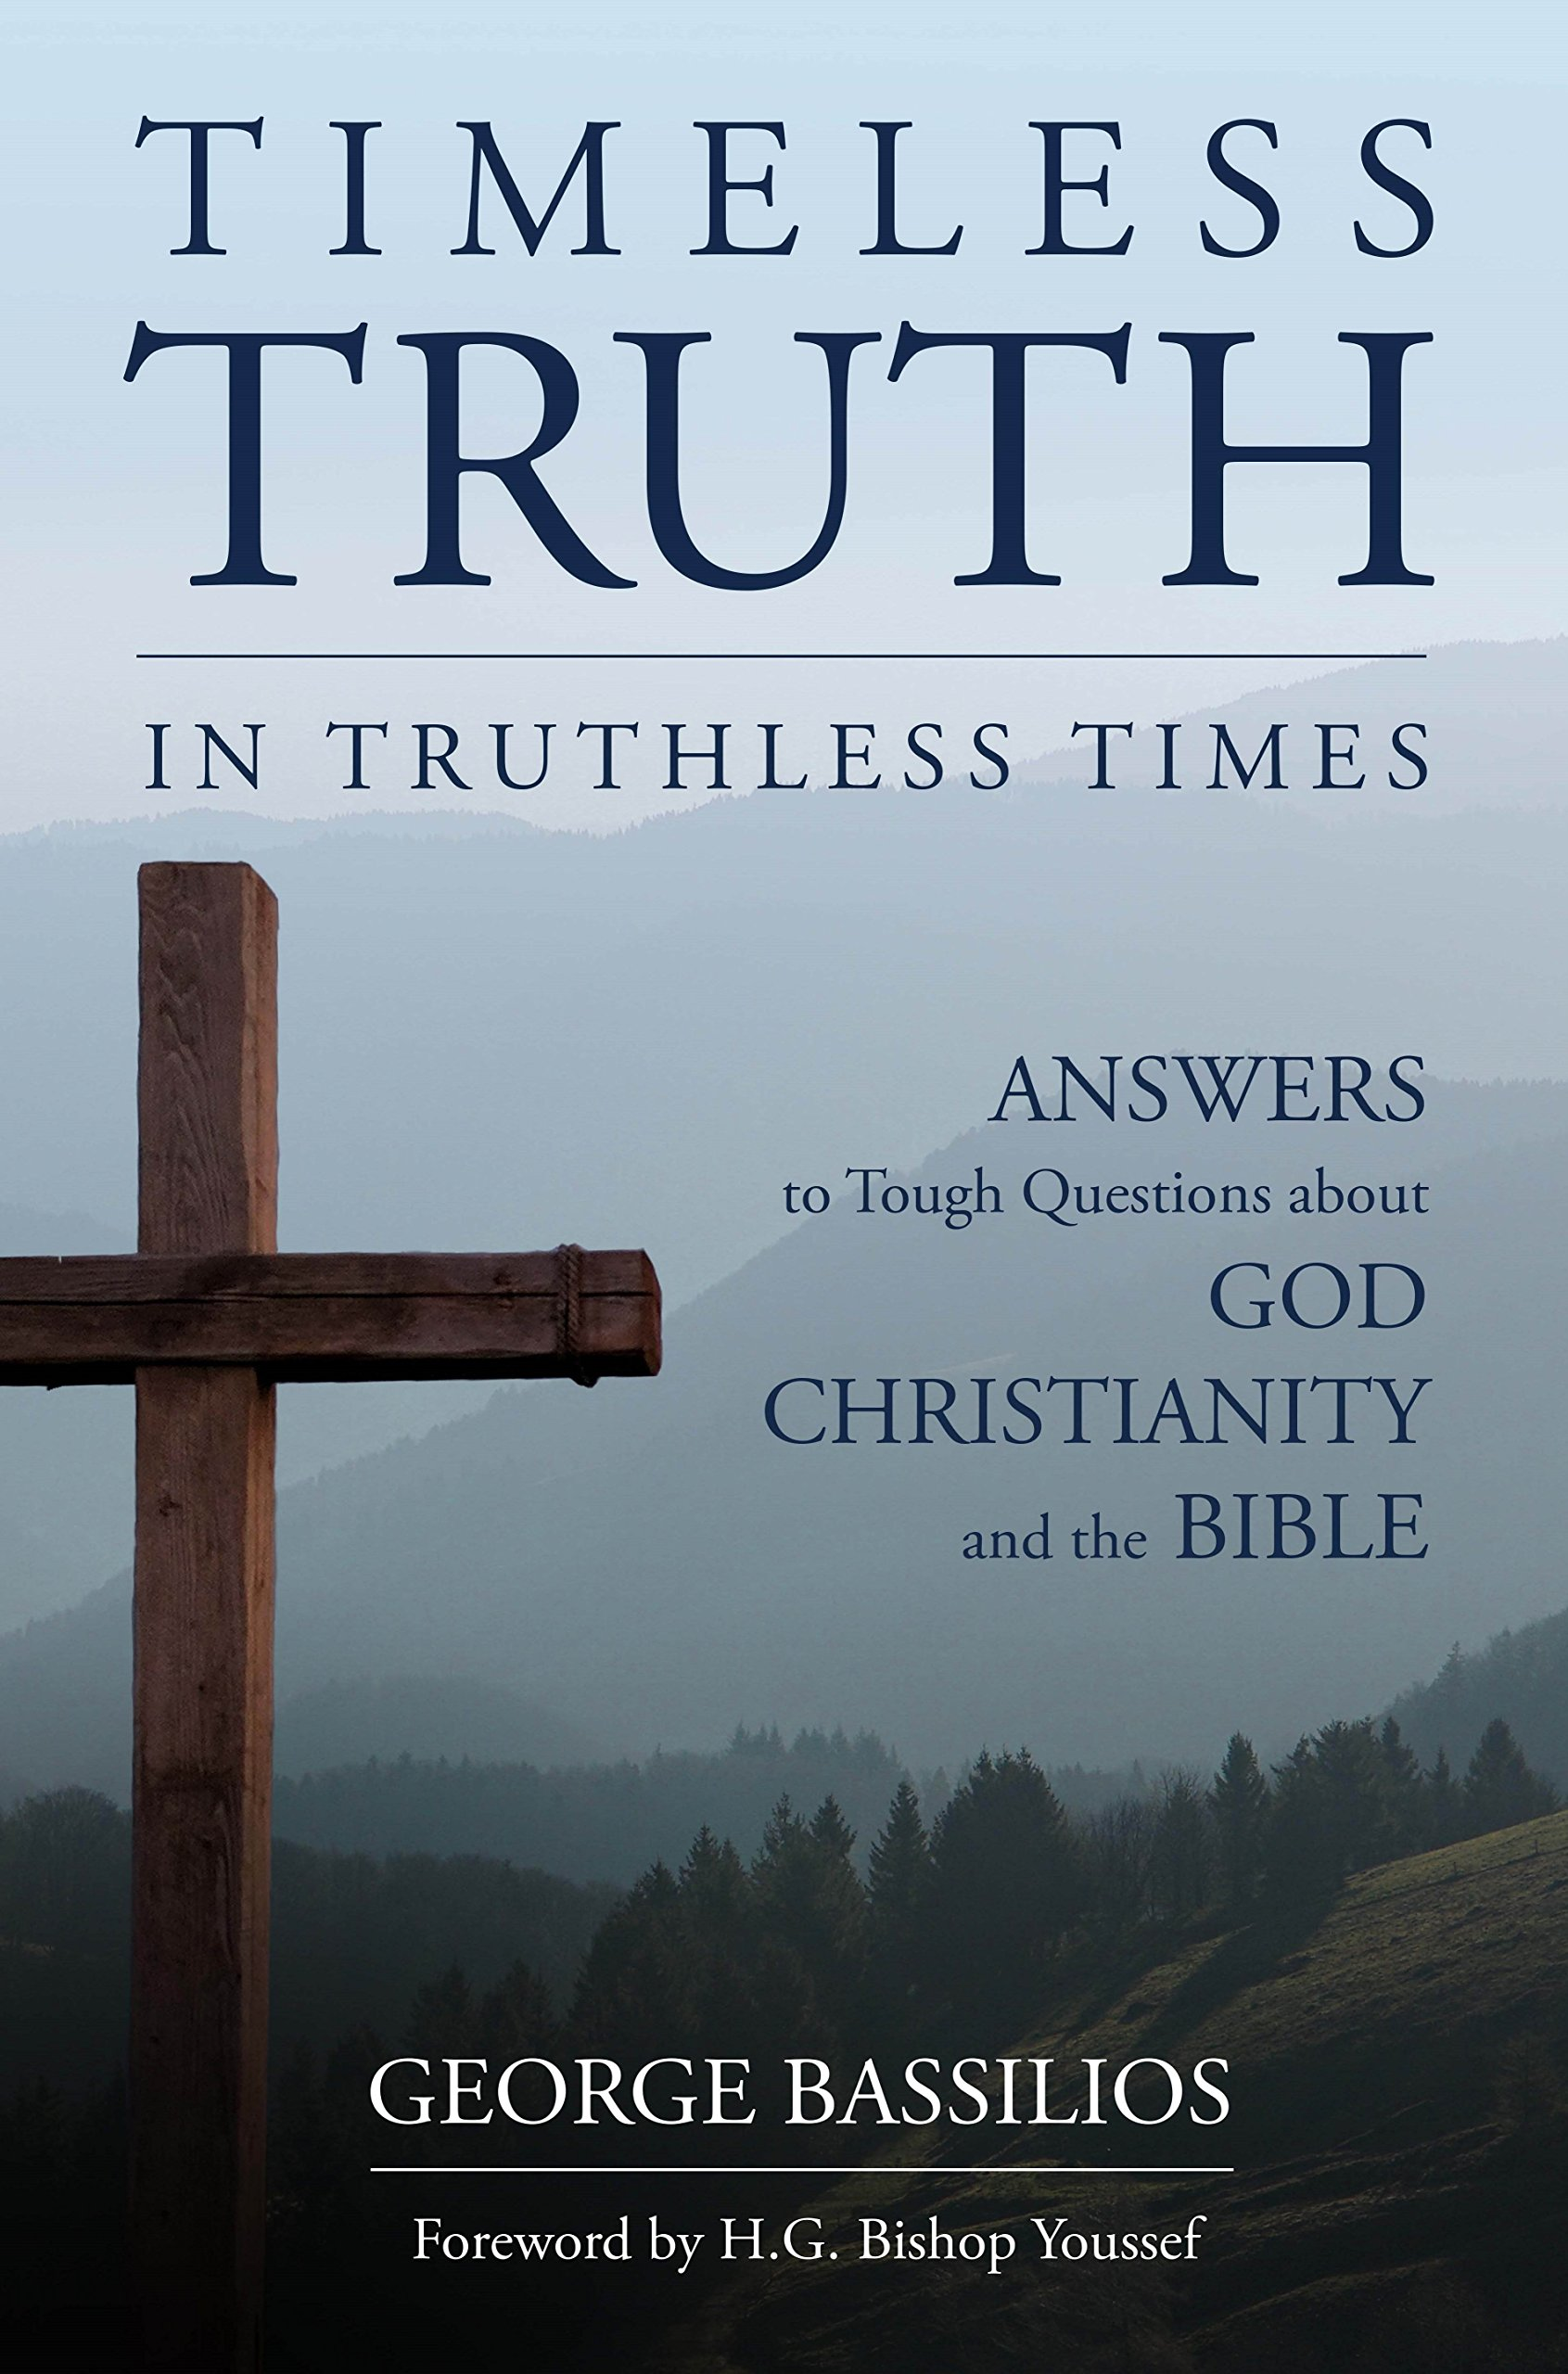 TOUGH QUESTIONS ANSWERED! - In this book, you will find insightful and concise answers to 35 tough questionsabout God, Christianity and the Bible, such as:Who created God?Why did God create people knowing they will end up in hell?Why is there so much evil in this world?Can I live a good moral life without God?It is the culmination of 15 years of Christian Apologetics (defending the Christian faith) and youth ministry.